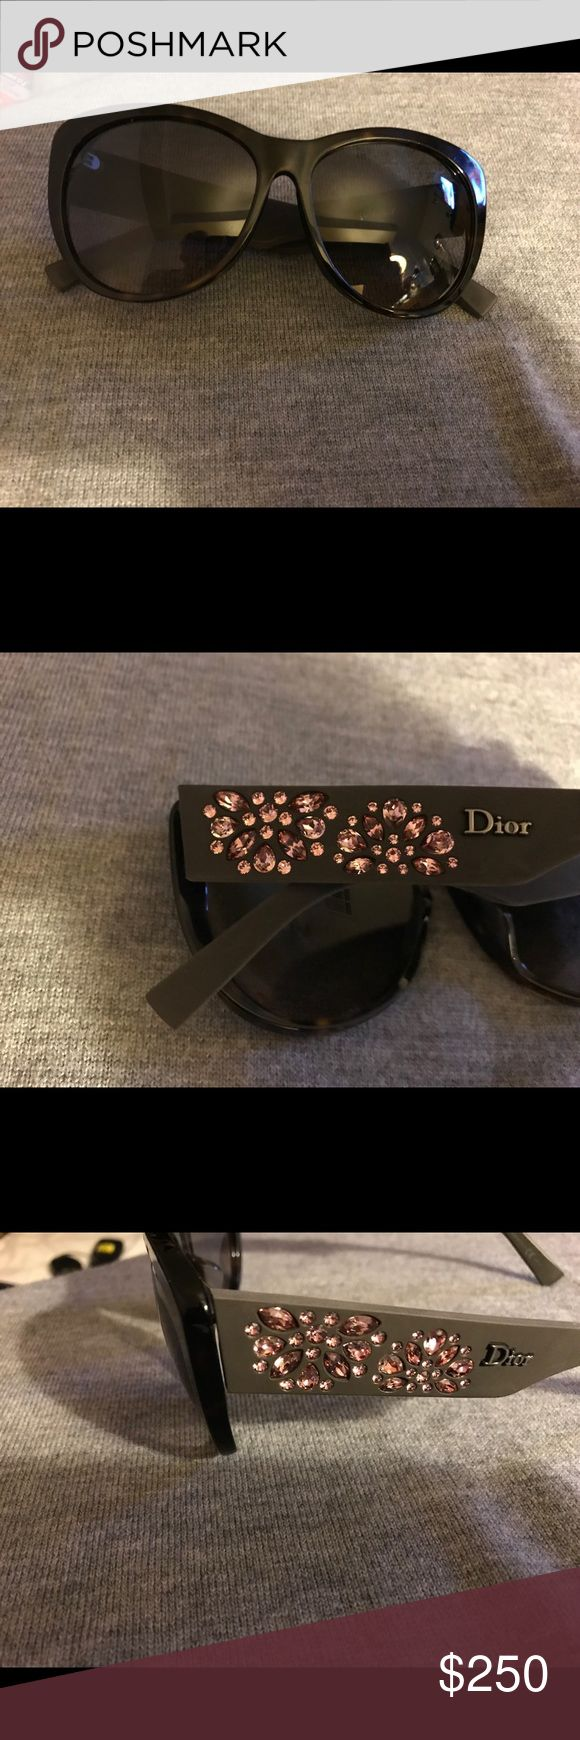 Dior Woman's Sunglass Havana Frame Pink Crystals Beautiful Fall/ Winter Sunglass to Complement your Browns Tans & Tweeds. The pink crystals give you just a touch of couture glamour. These sunglasses are stunning Dior Accessories Sunglasses